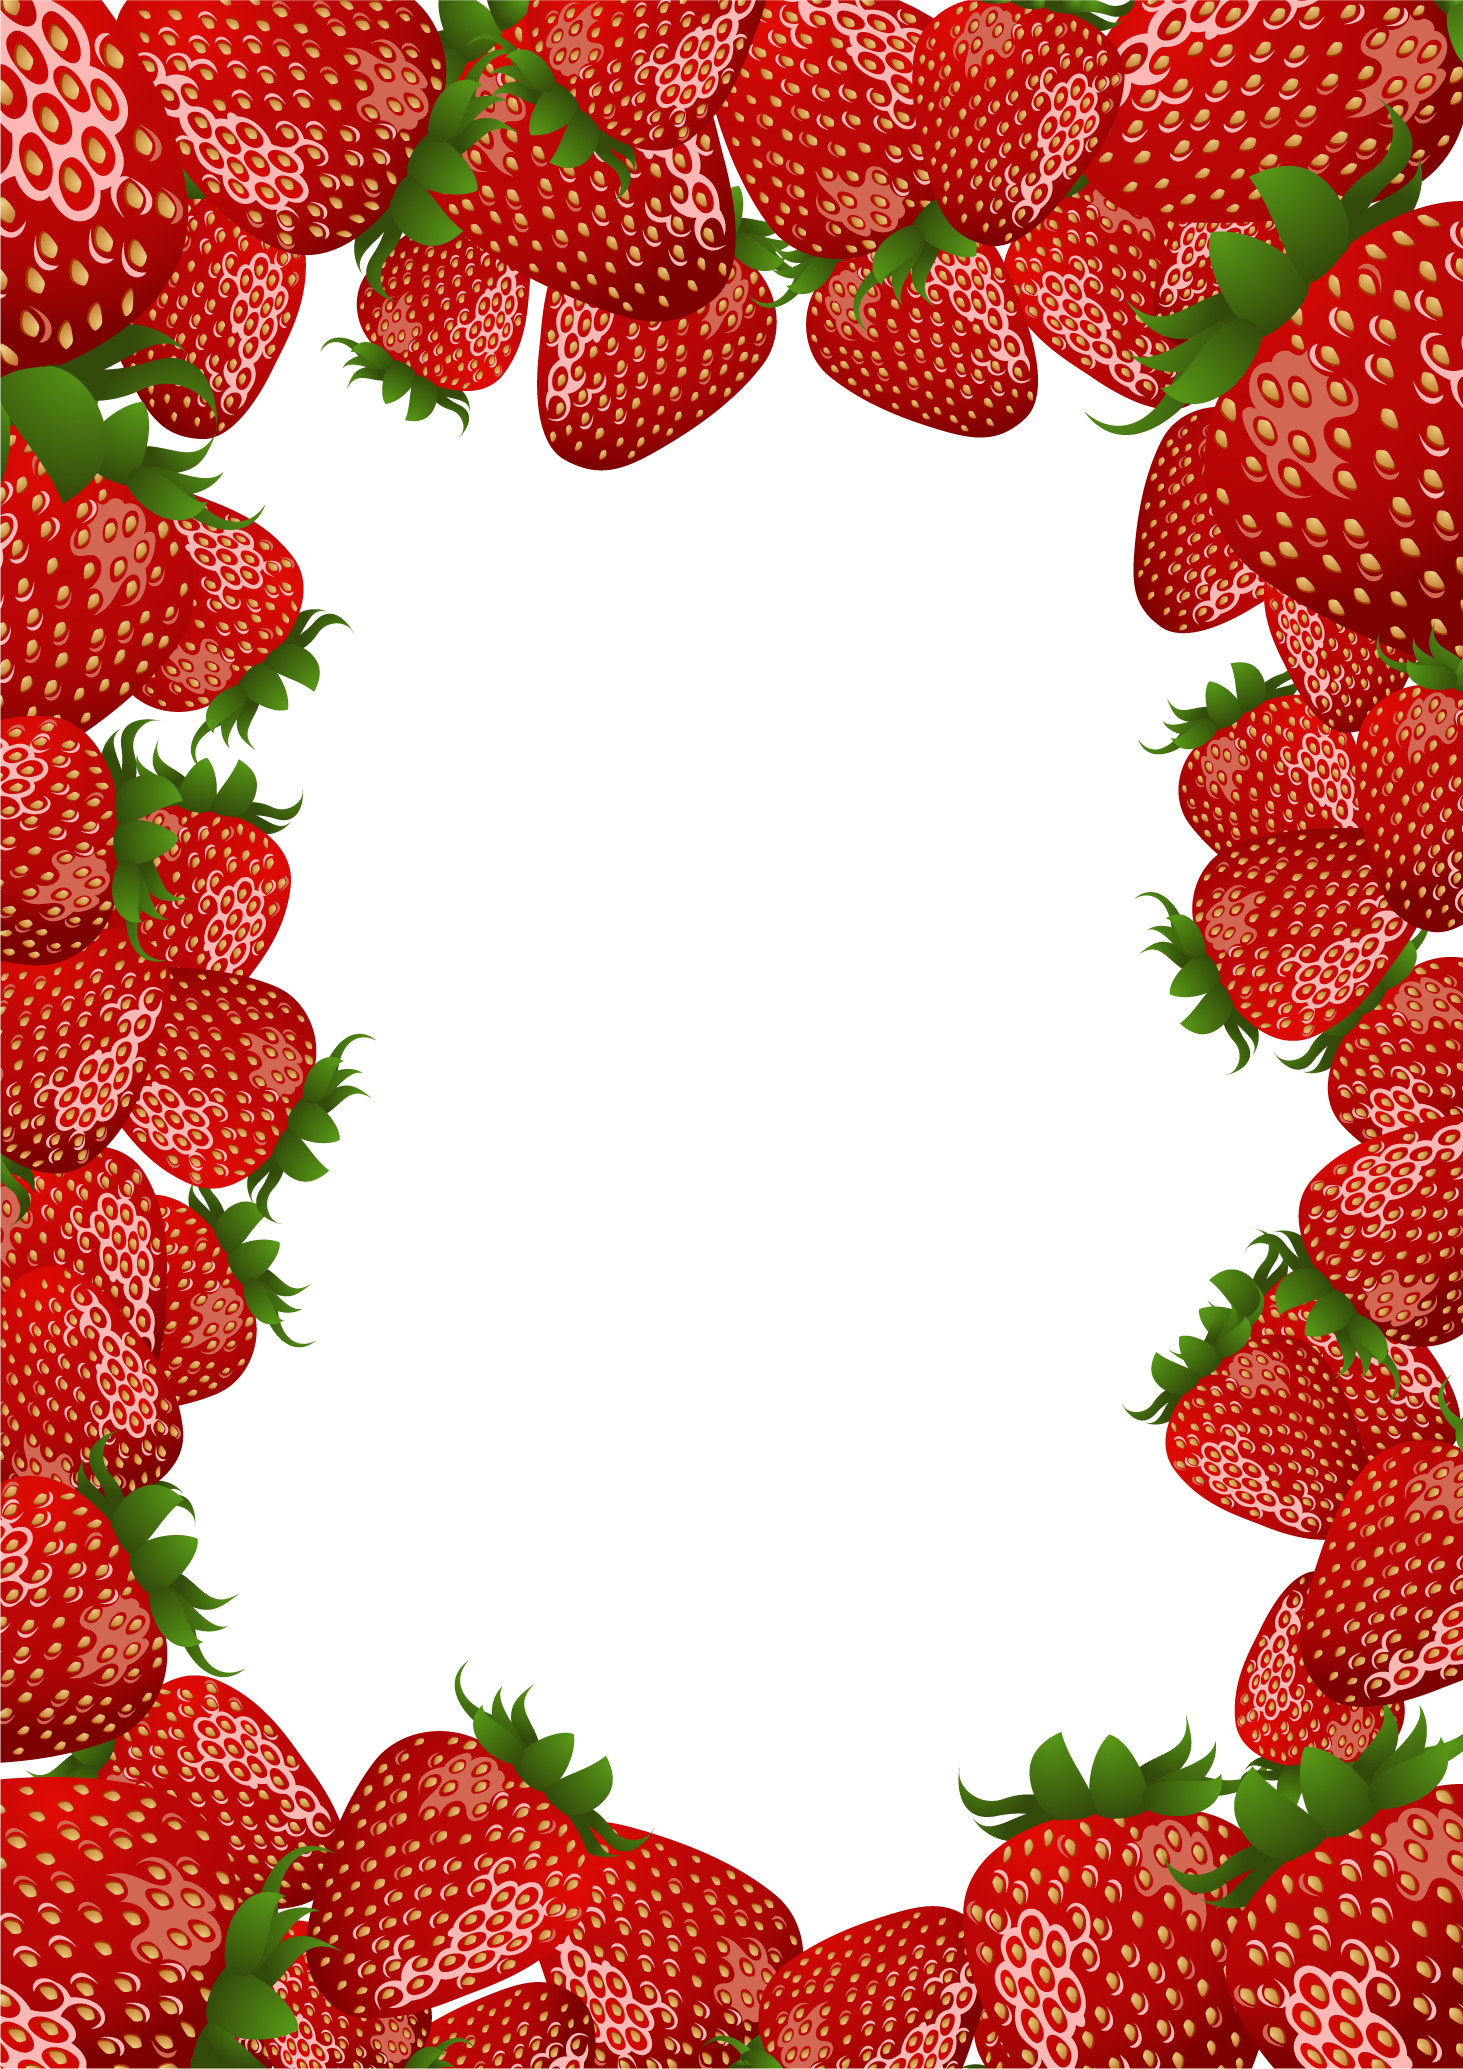 Frame clipart strawberry Strawberry by Frame flashtuchka Frame